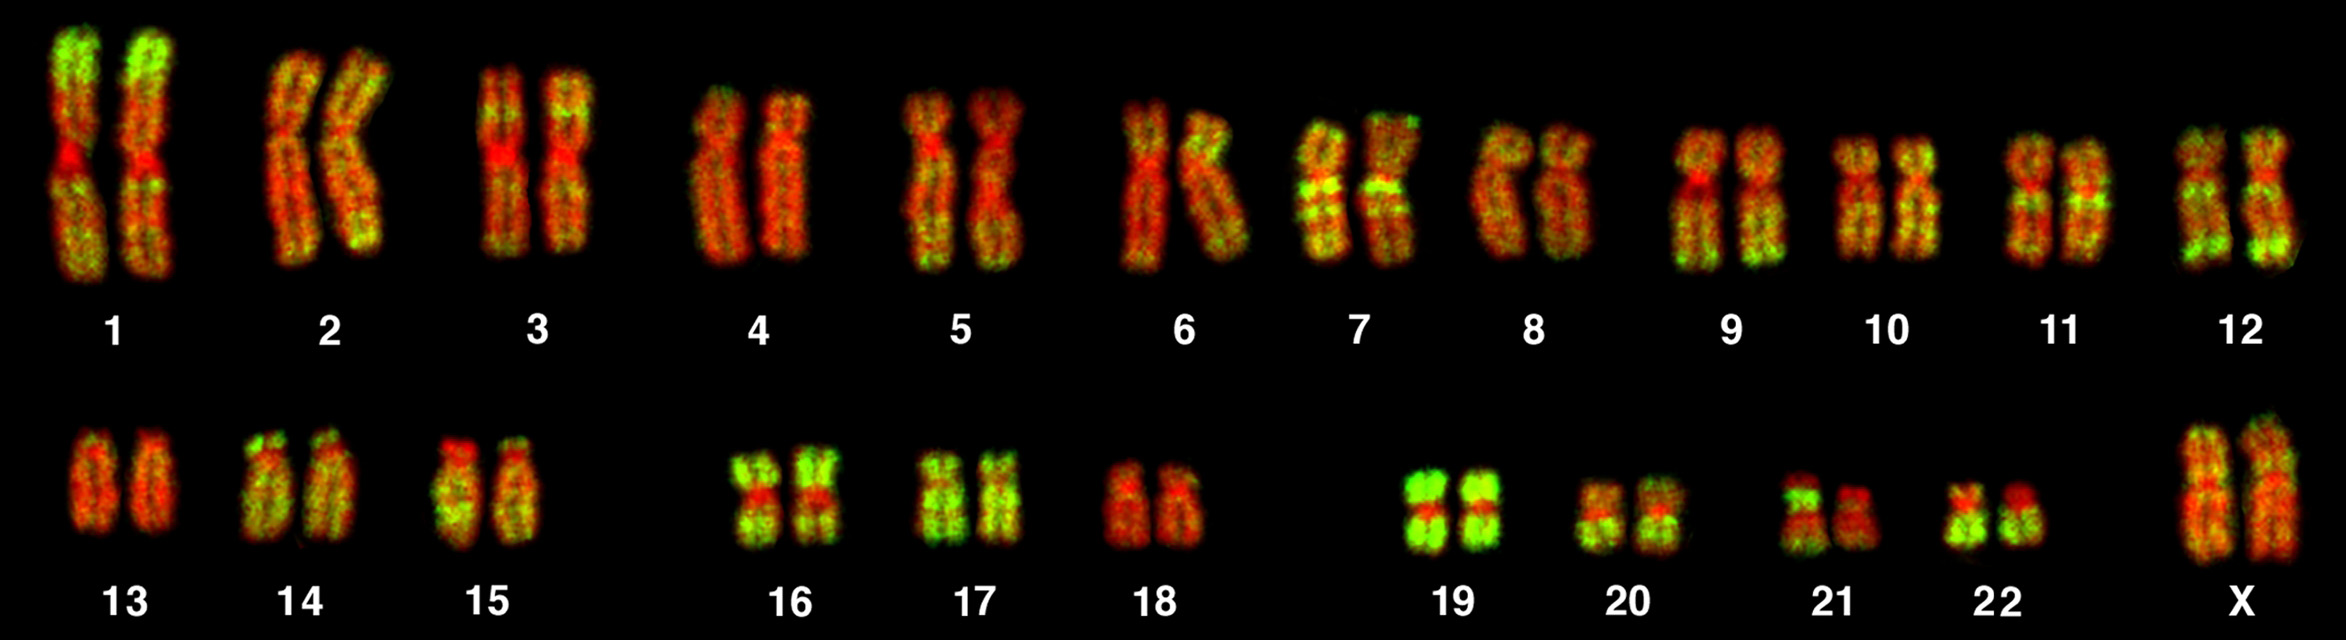 Most of the content of our chromosomes may simply function as a protective mechanisms against rogue mutations. Credit: Andreas Bolzer, Gregor Kreth, Irina Solovei, Daniela Koehler, Kaan Saracoglu, Christine Fauth, Stefan Müller, Roland Eils, Christoph Cremer, Michael R. Speicher, Thomas Cremer, via Wikimedia Commons